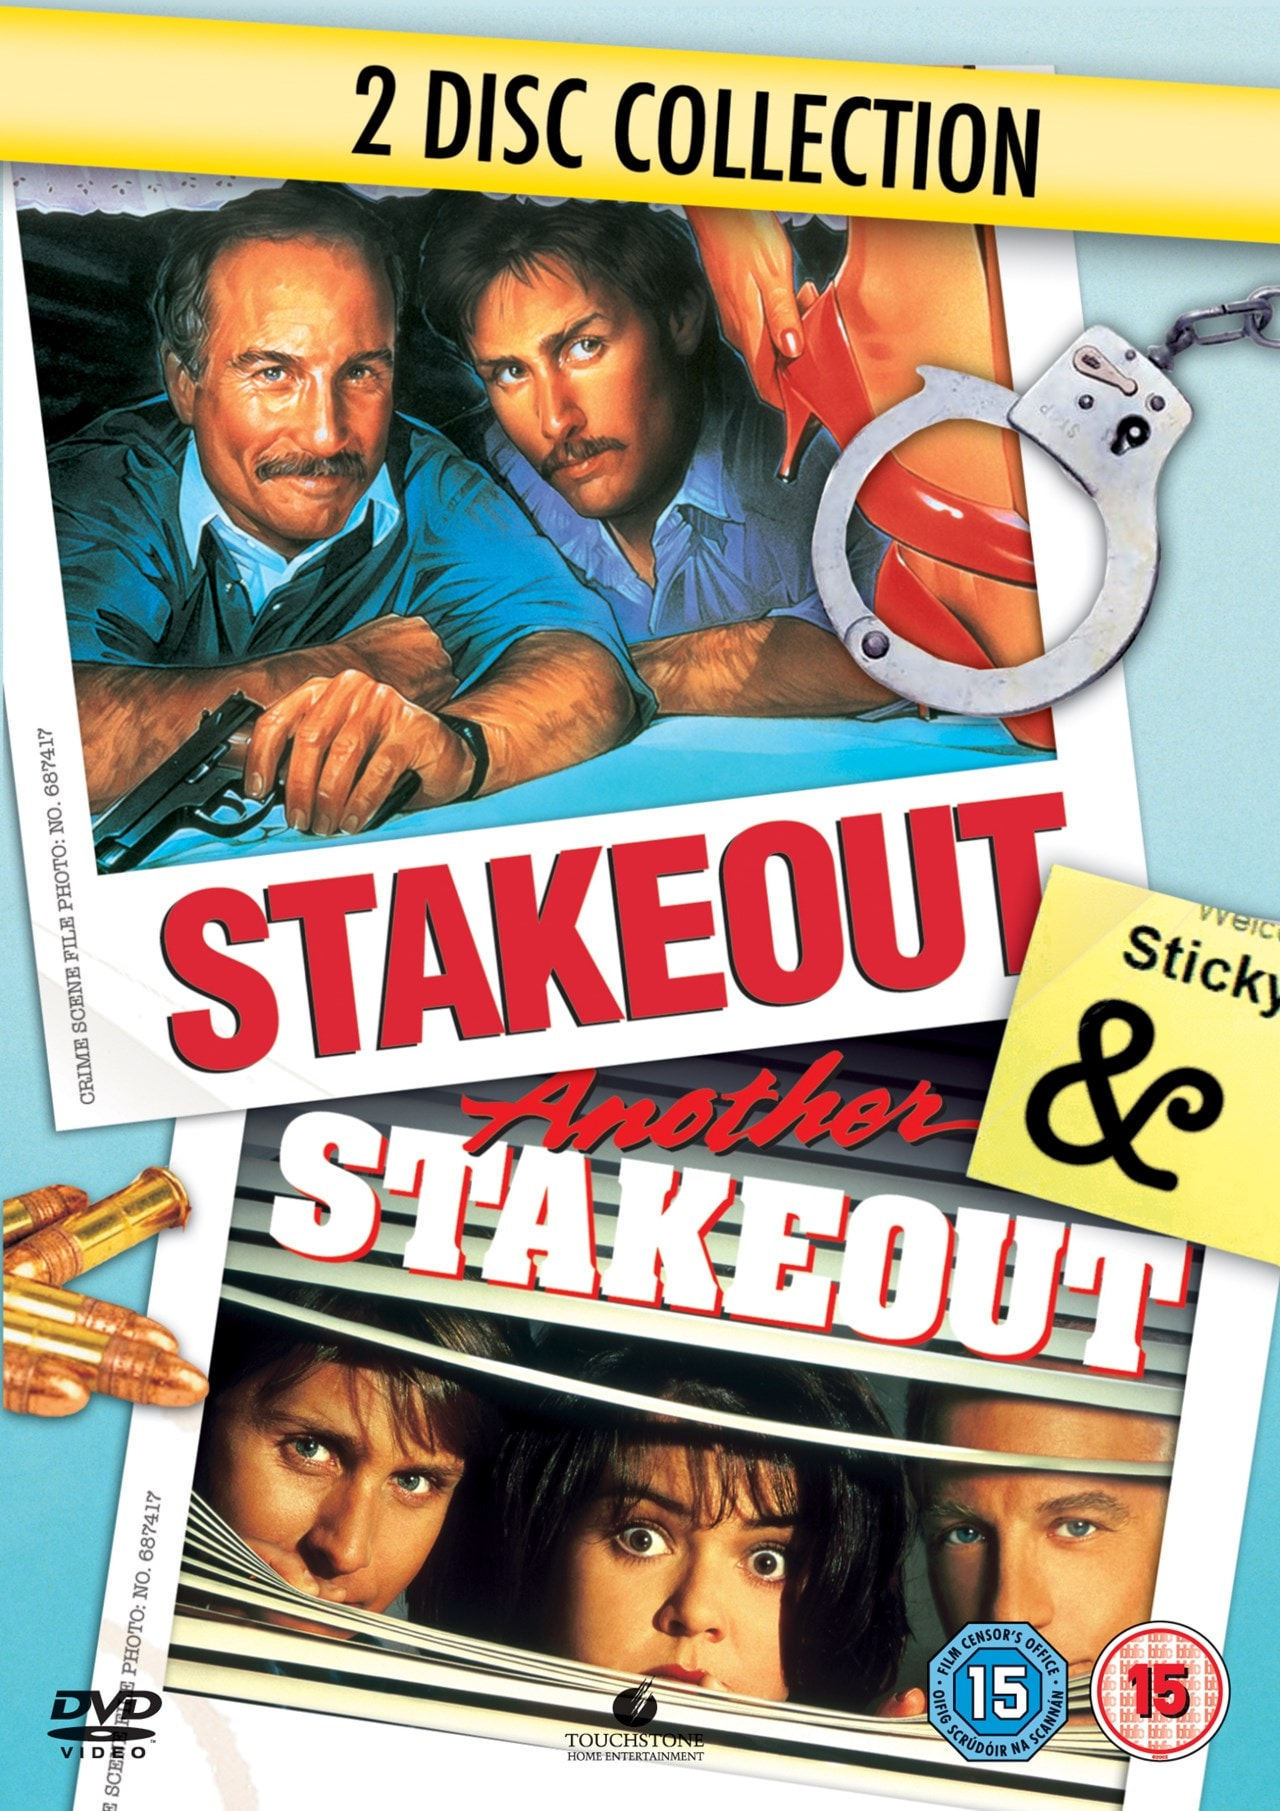 Stakeout/Another Stakeout - 1